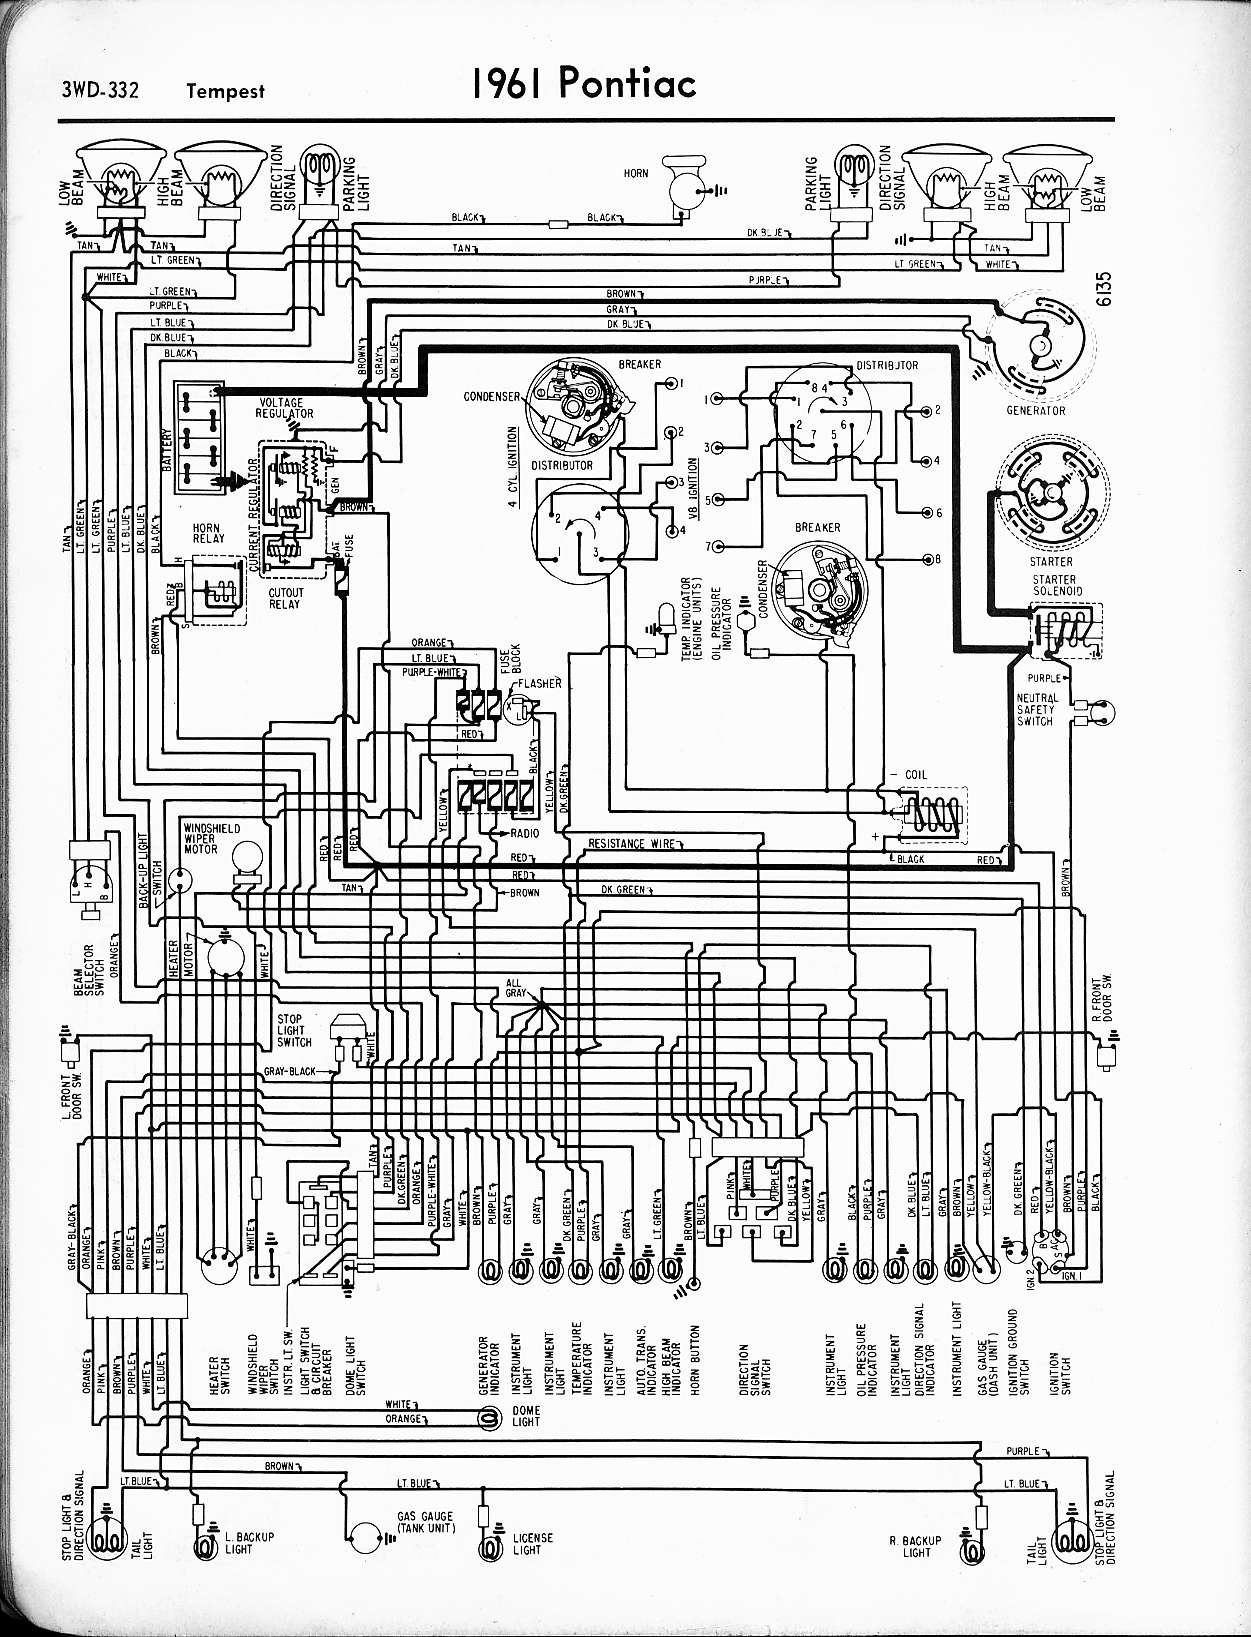 1967 pontiac wiring diagram captain source of wiring diagram 1967 GTO Wiring-Diagram